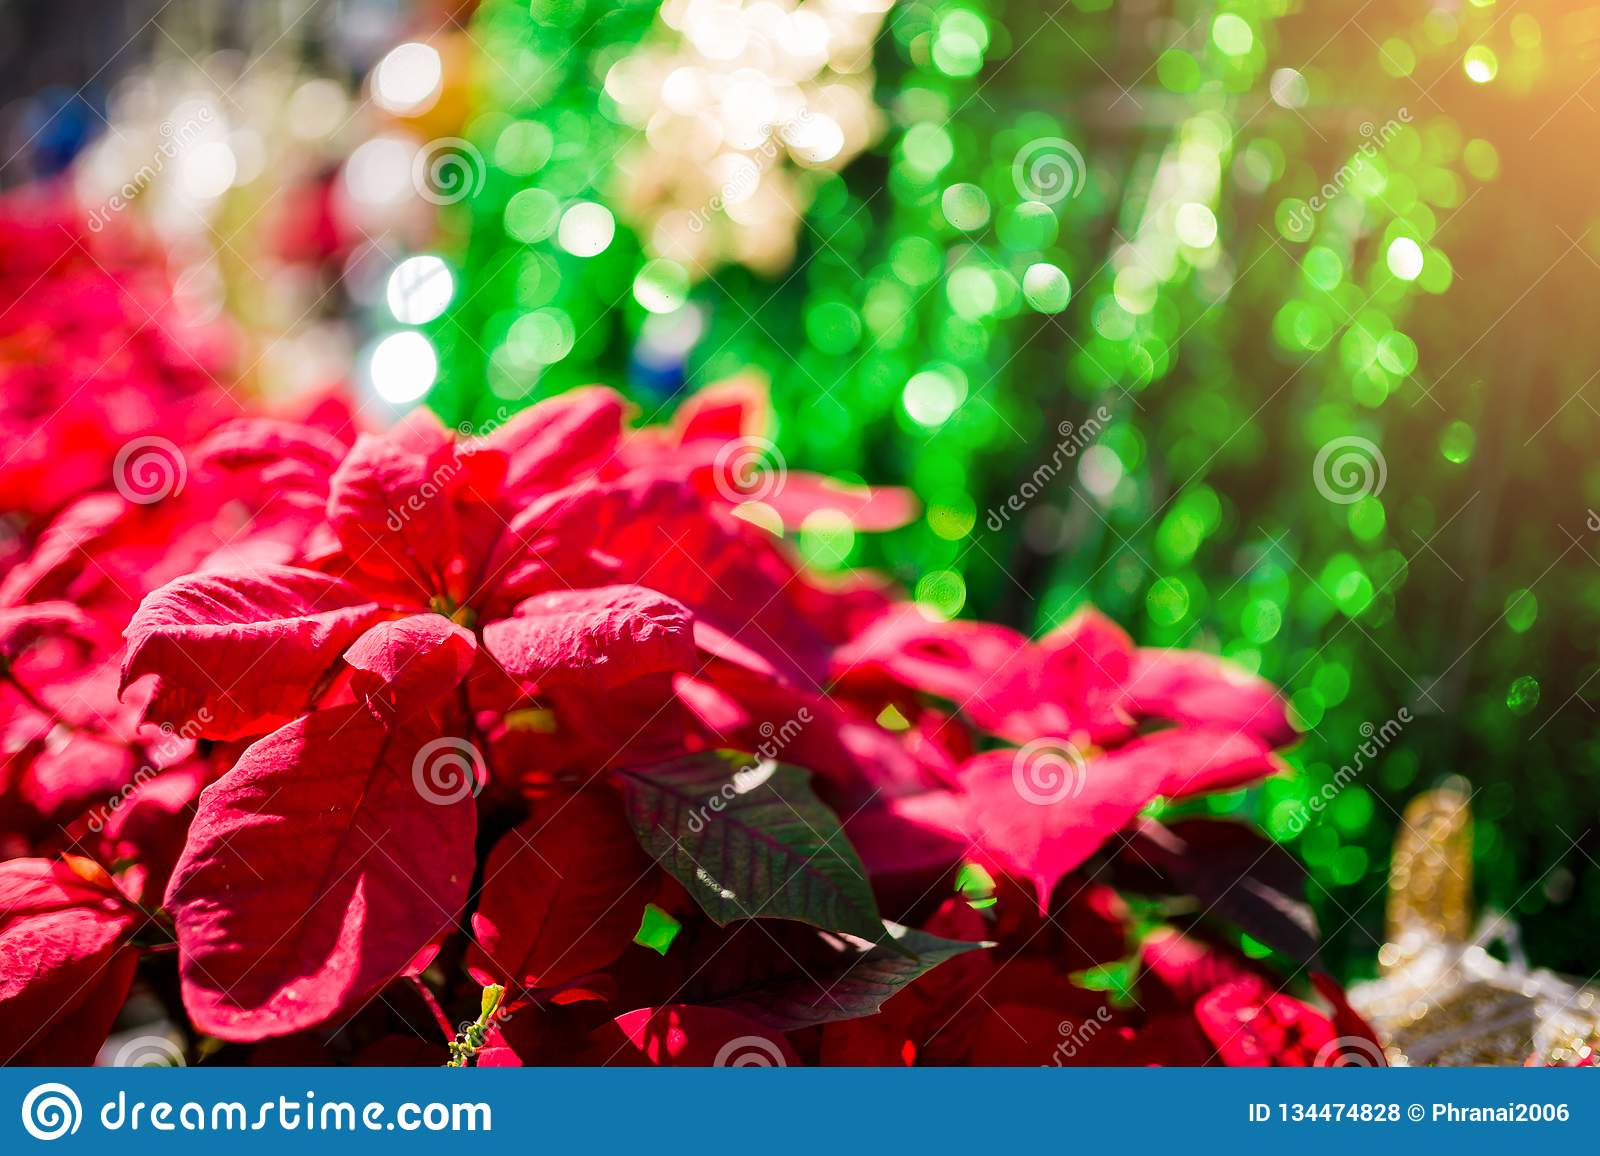 Red poinesettia tree for christmas holiday background with selective focus. New Year holidays background royalty free stock photos